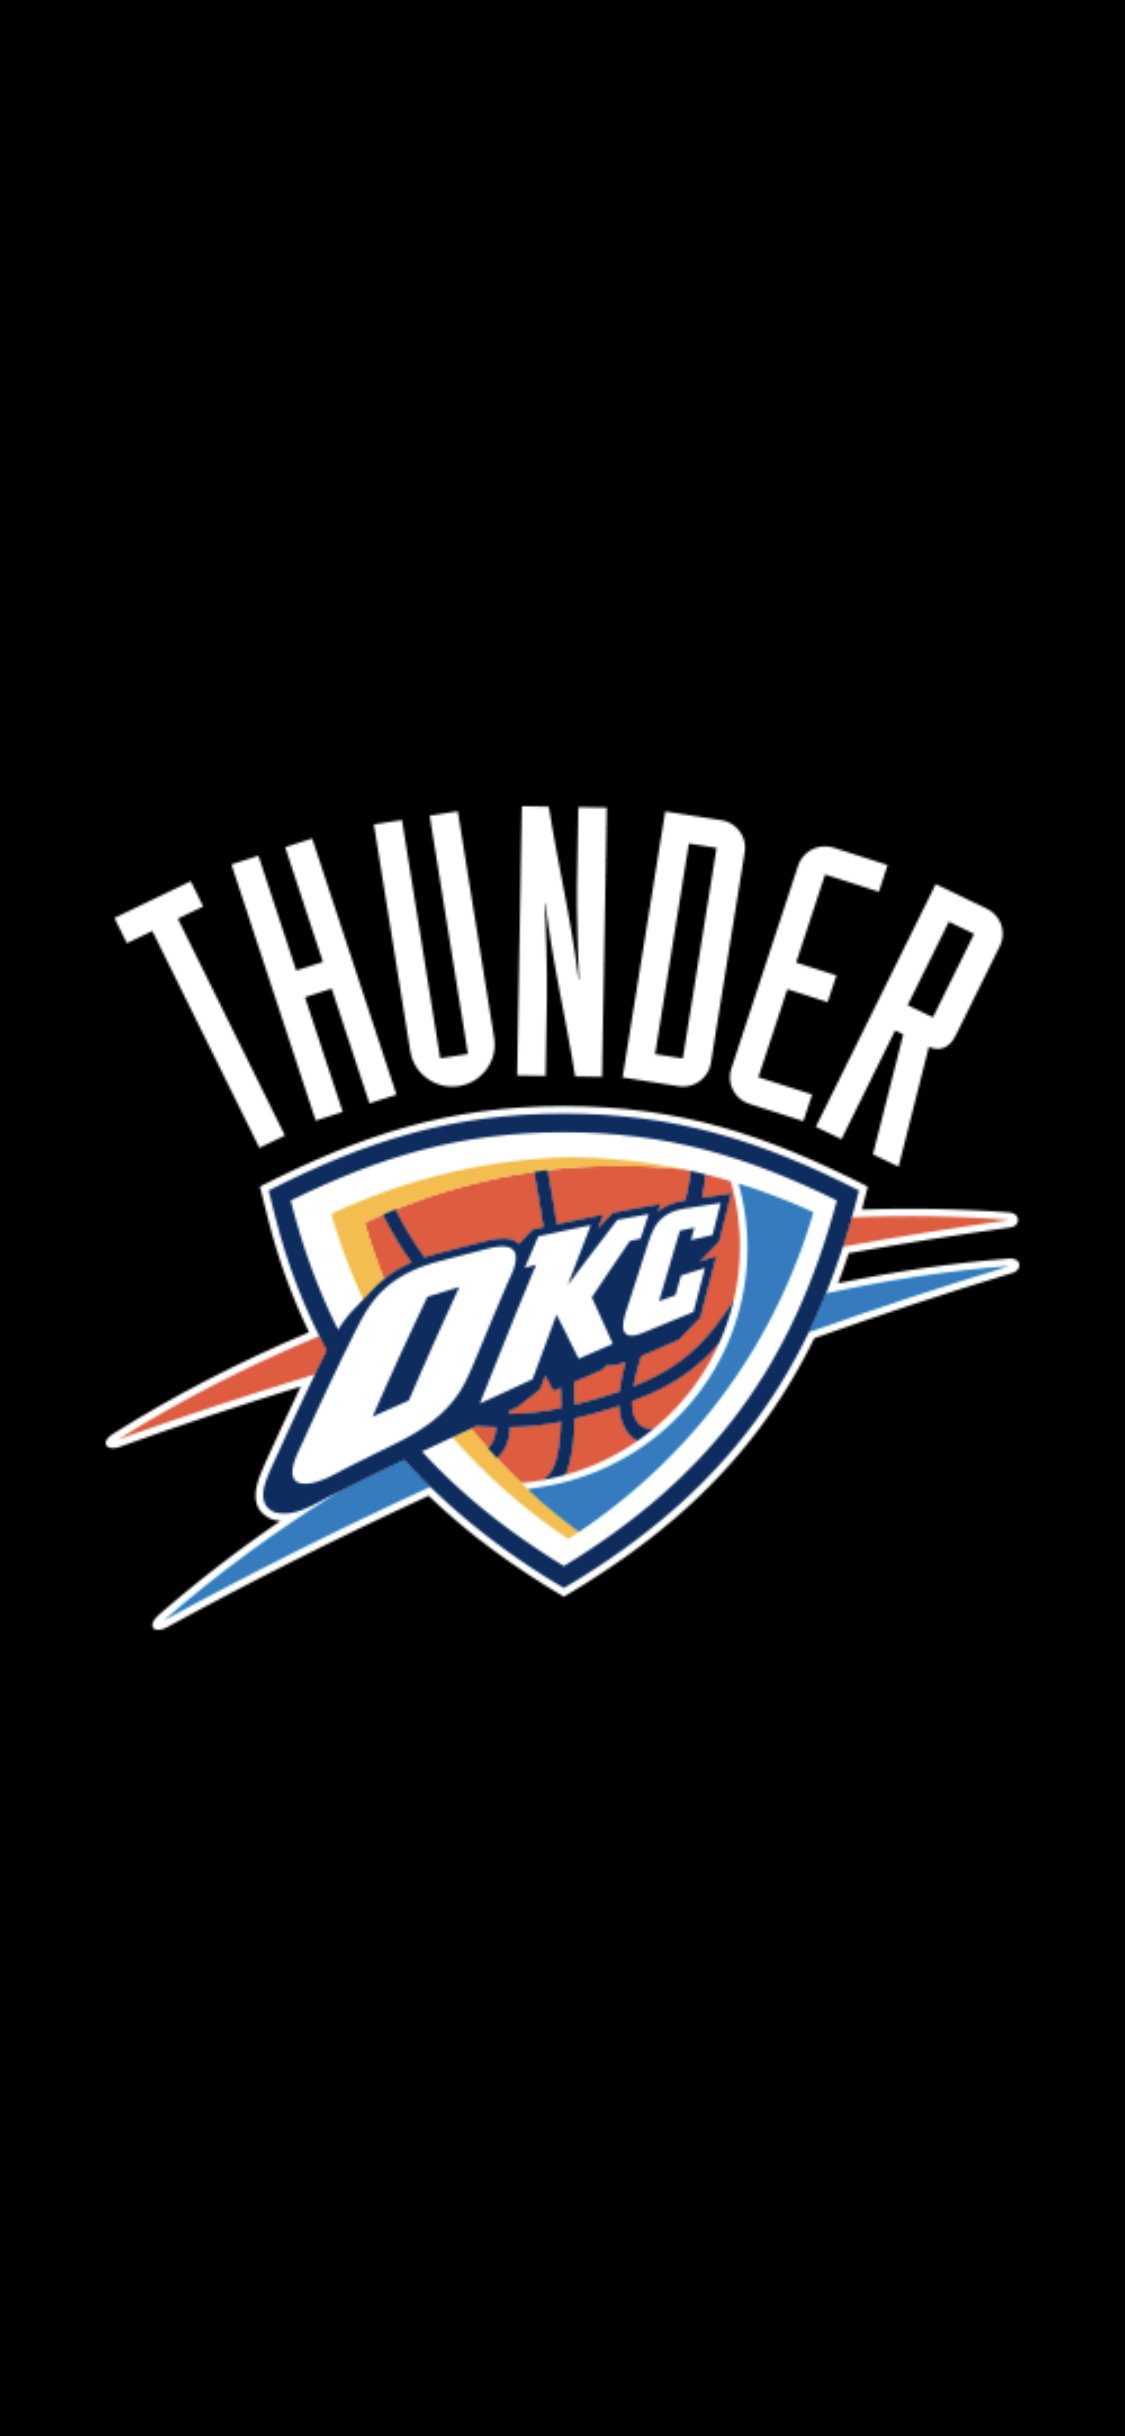 Okc Thunder Wallpaper Iphone Background Oklahoma City Okc Thunder Thunder Oklahoma City Thunder